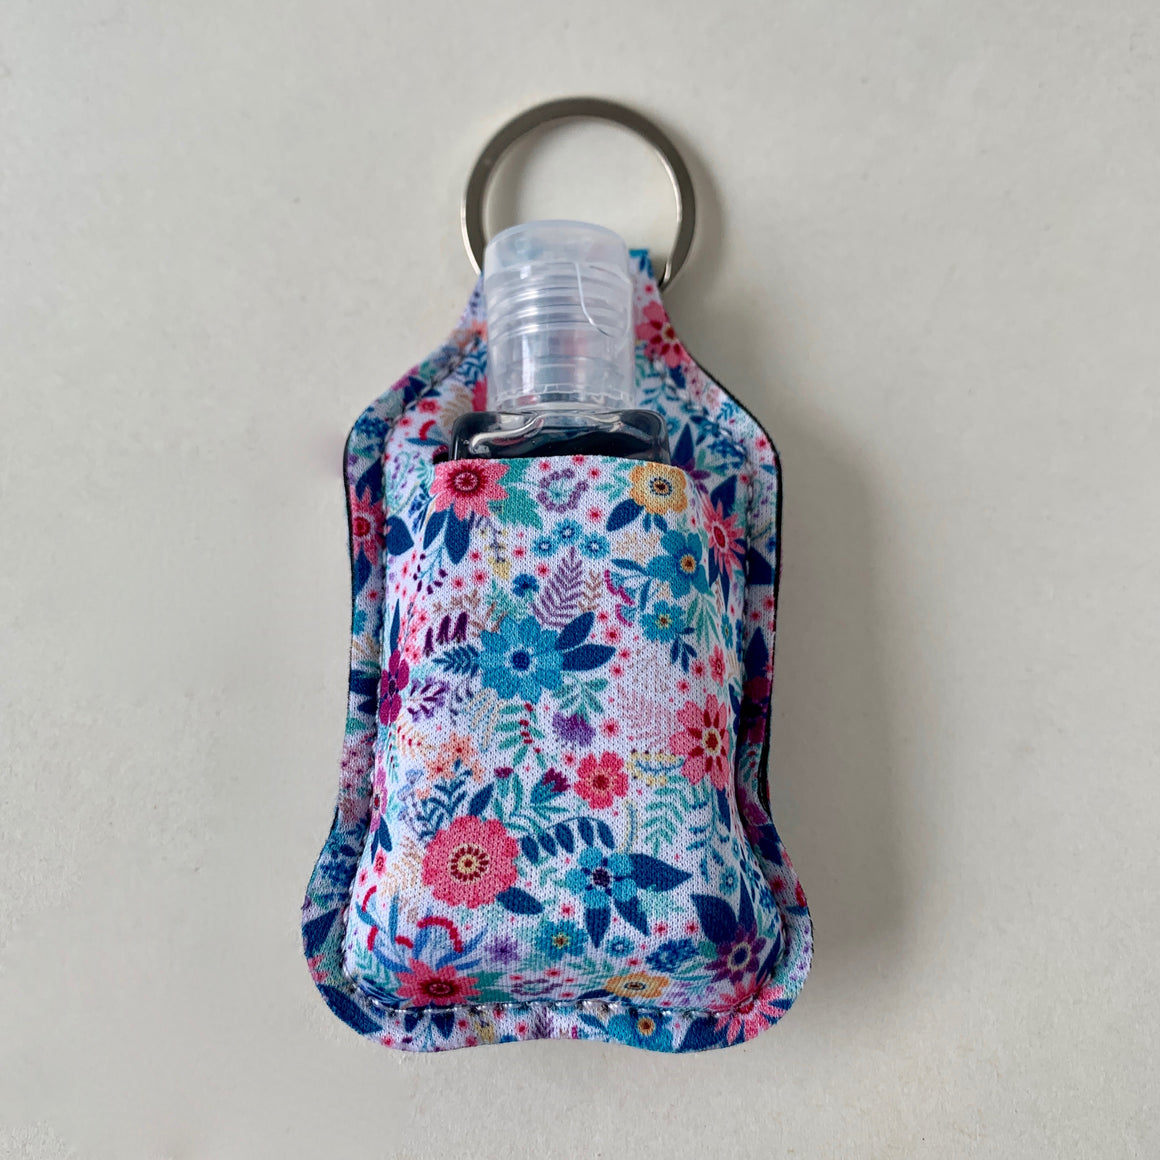 Keychain/Hand Sanitizer Holder